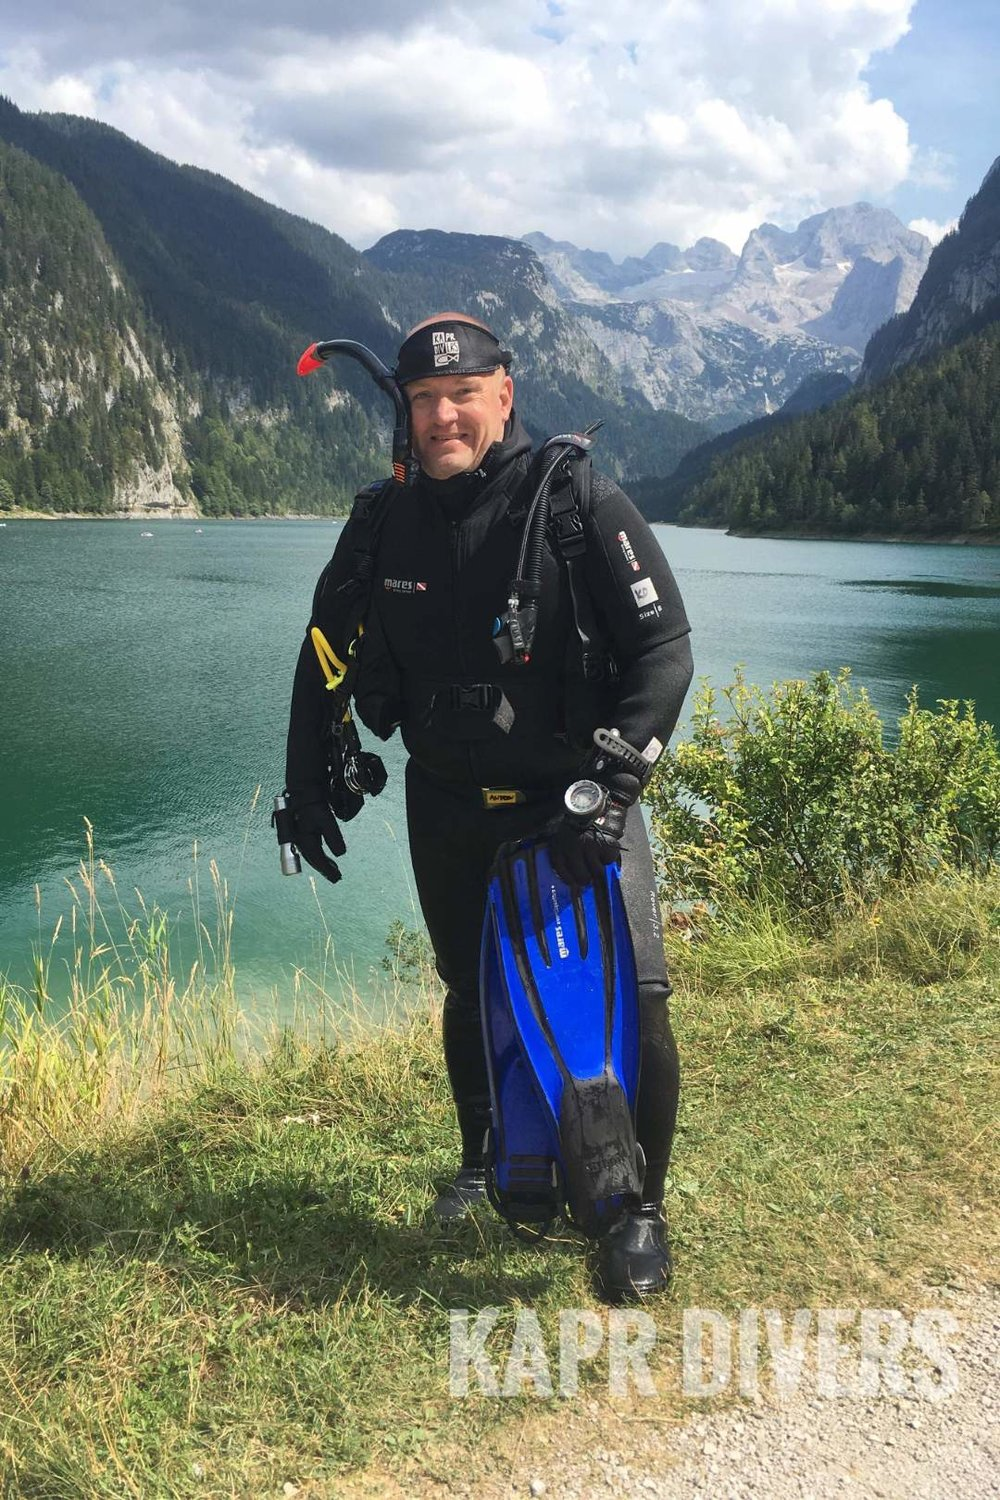 PADI Specialty Instructor - Diving since: 2018Instructor Certifications: Open Water, Advanced Open Water, Rescue Diver, Divemaster, Peak Performance Buoyancy, Search & Recovery, Underwater Navigator, Enriched Air, Deep Diver, Delayed Surface Marker Buoy, Project AWARE, Project Aware Coral Reef